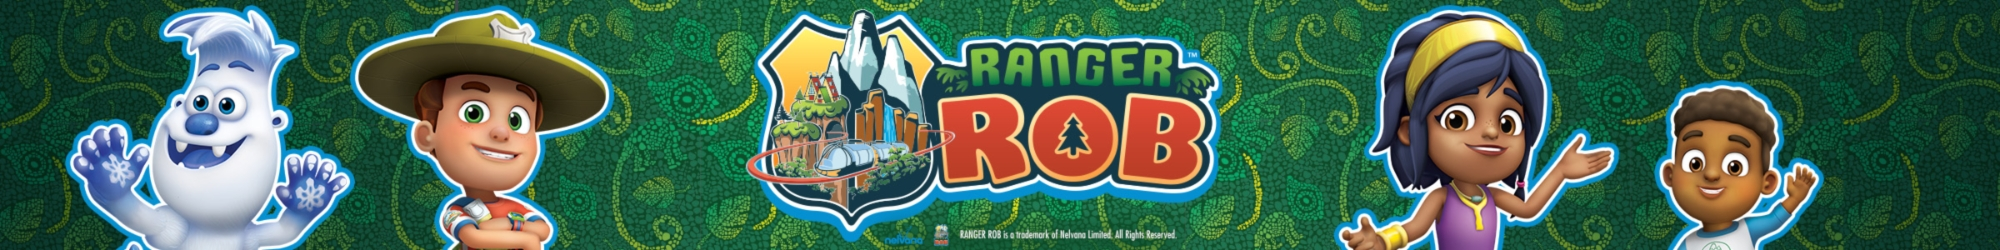 Showroom - Ranger Rob